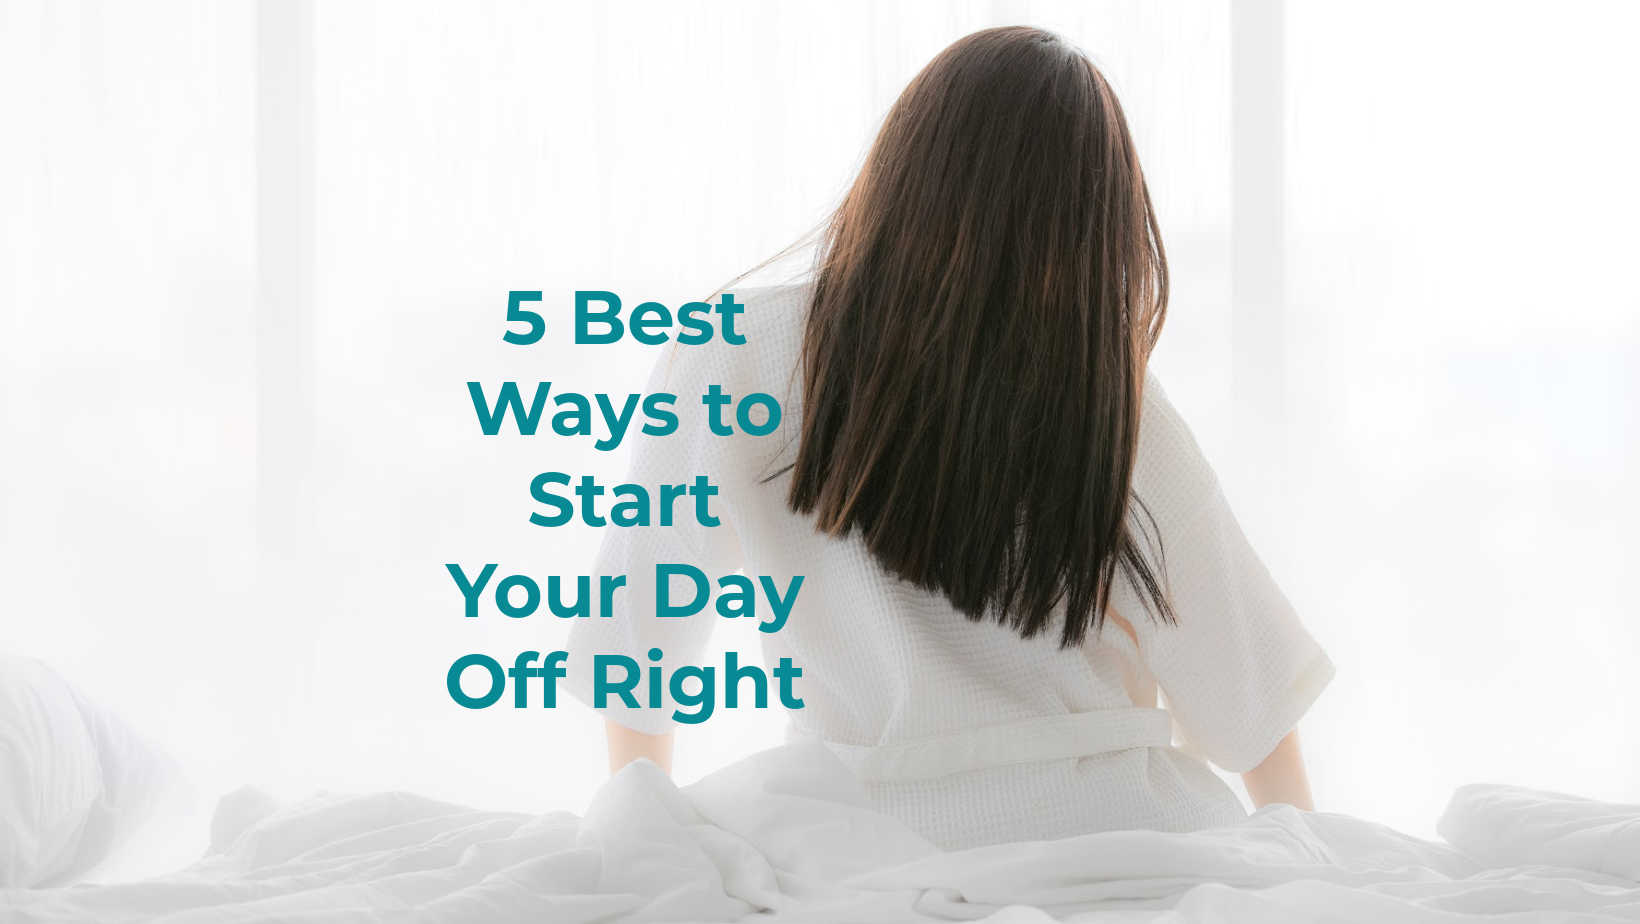 starting your day off right begins with these 5 steps